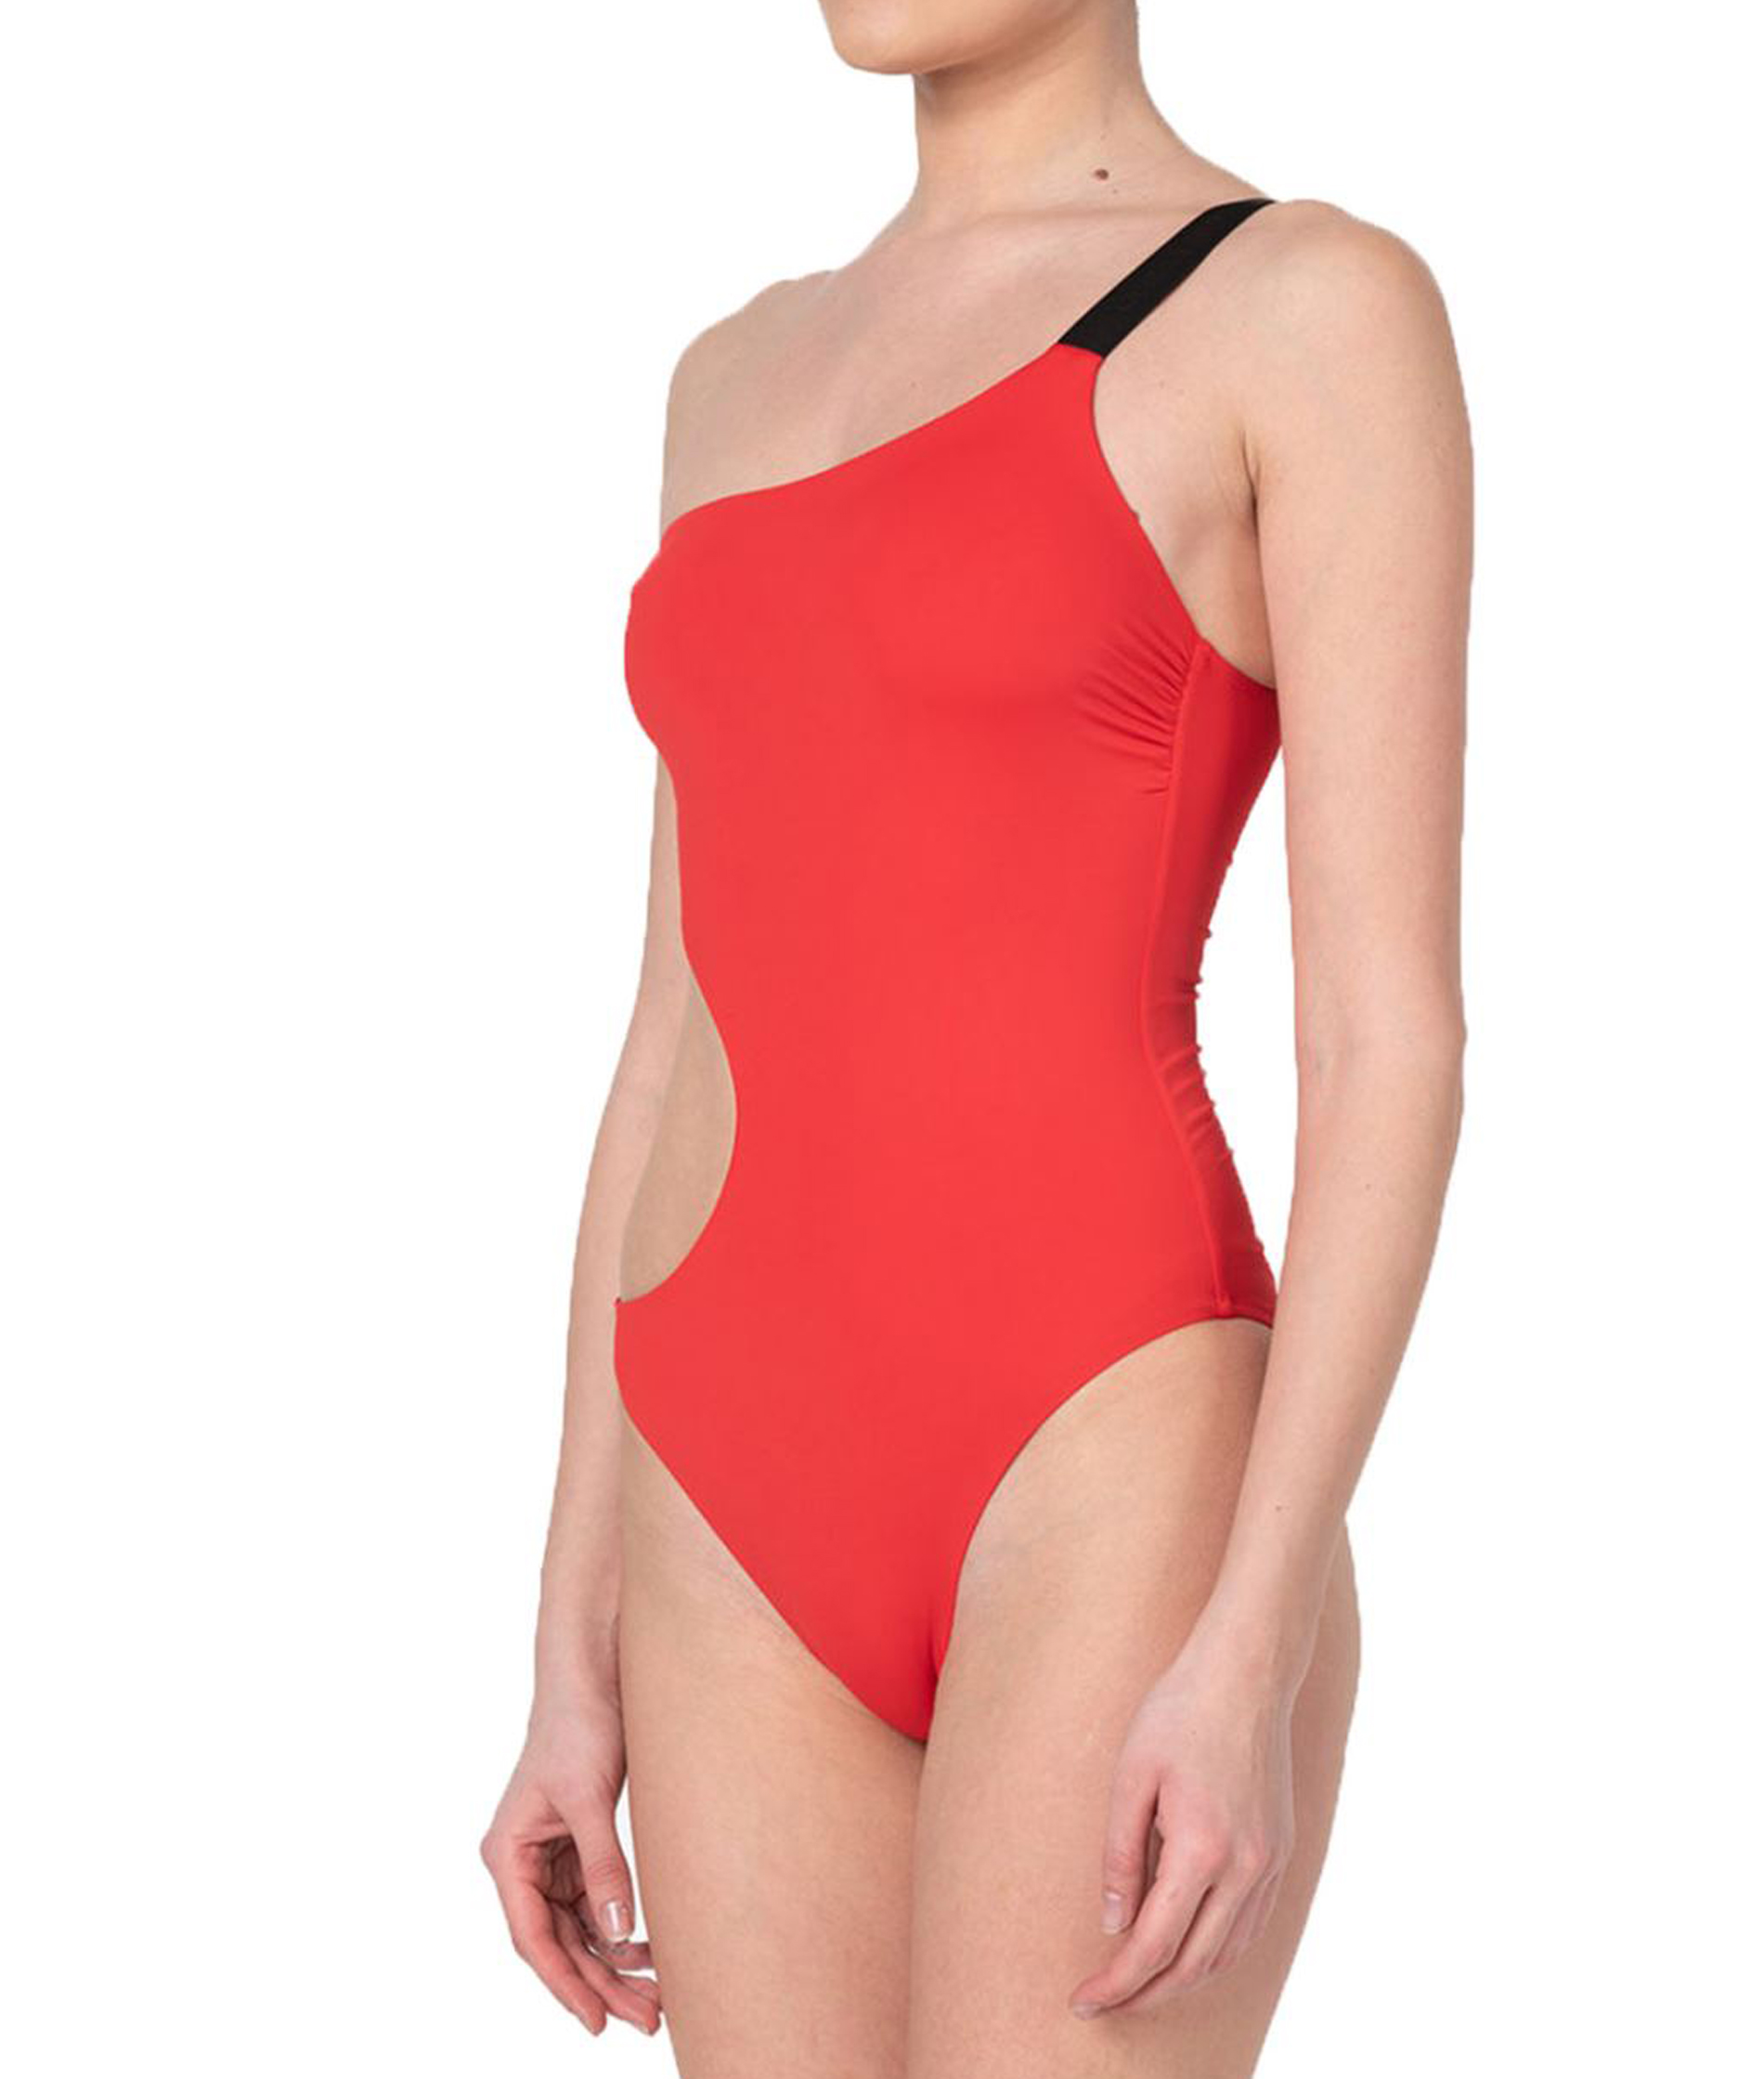 Karl Lagerfeld Womens Basic Red One Piece